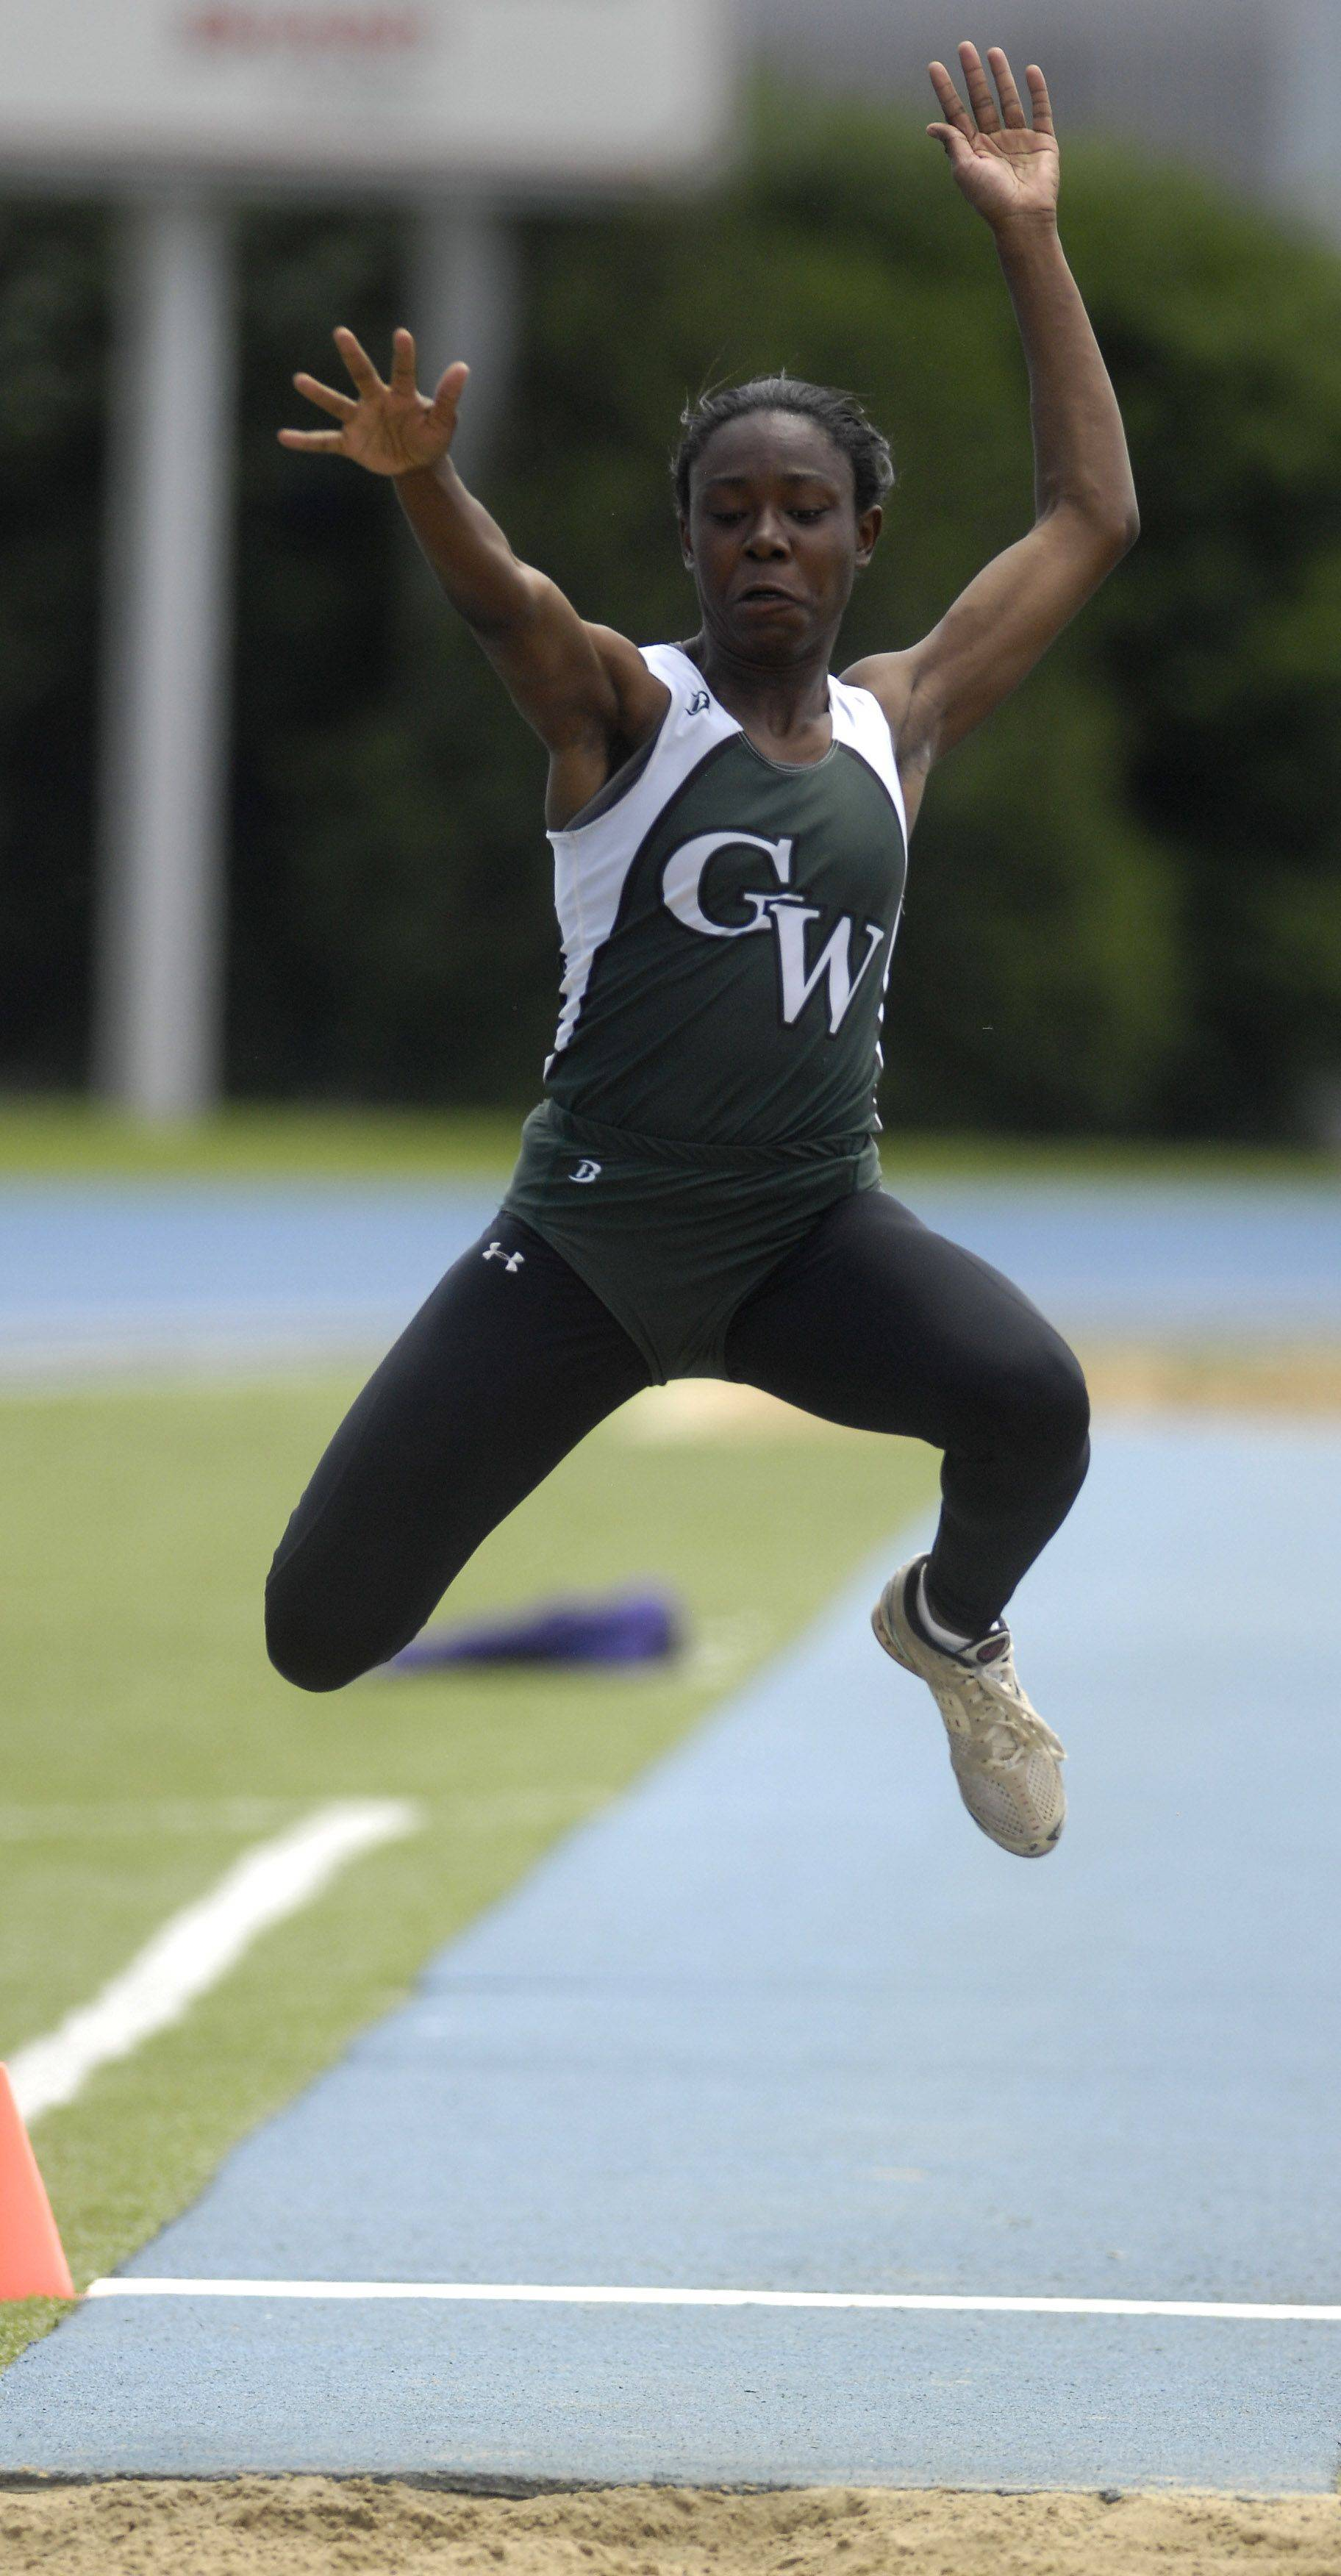 Glenbard West's Kathryn Pickett competes in the long jump during Friday's preliminaries of the IHSA girls state track finals in Charleston.